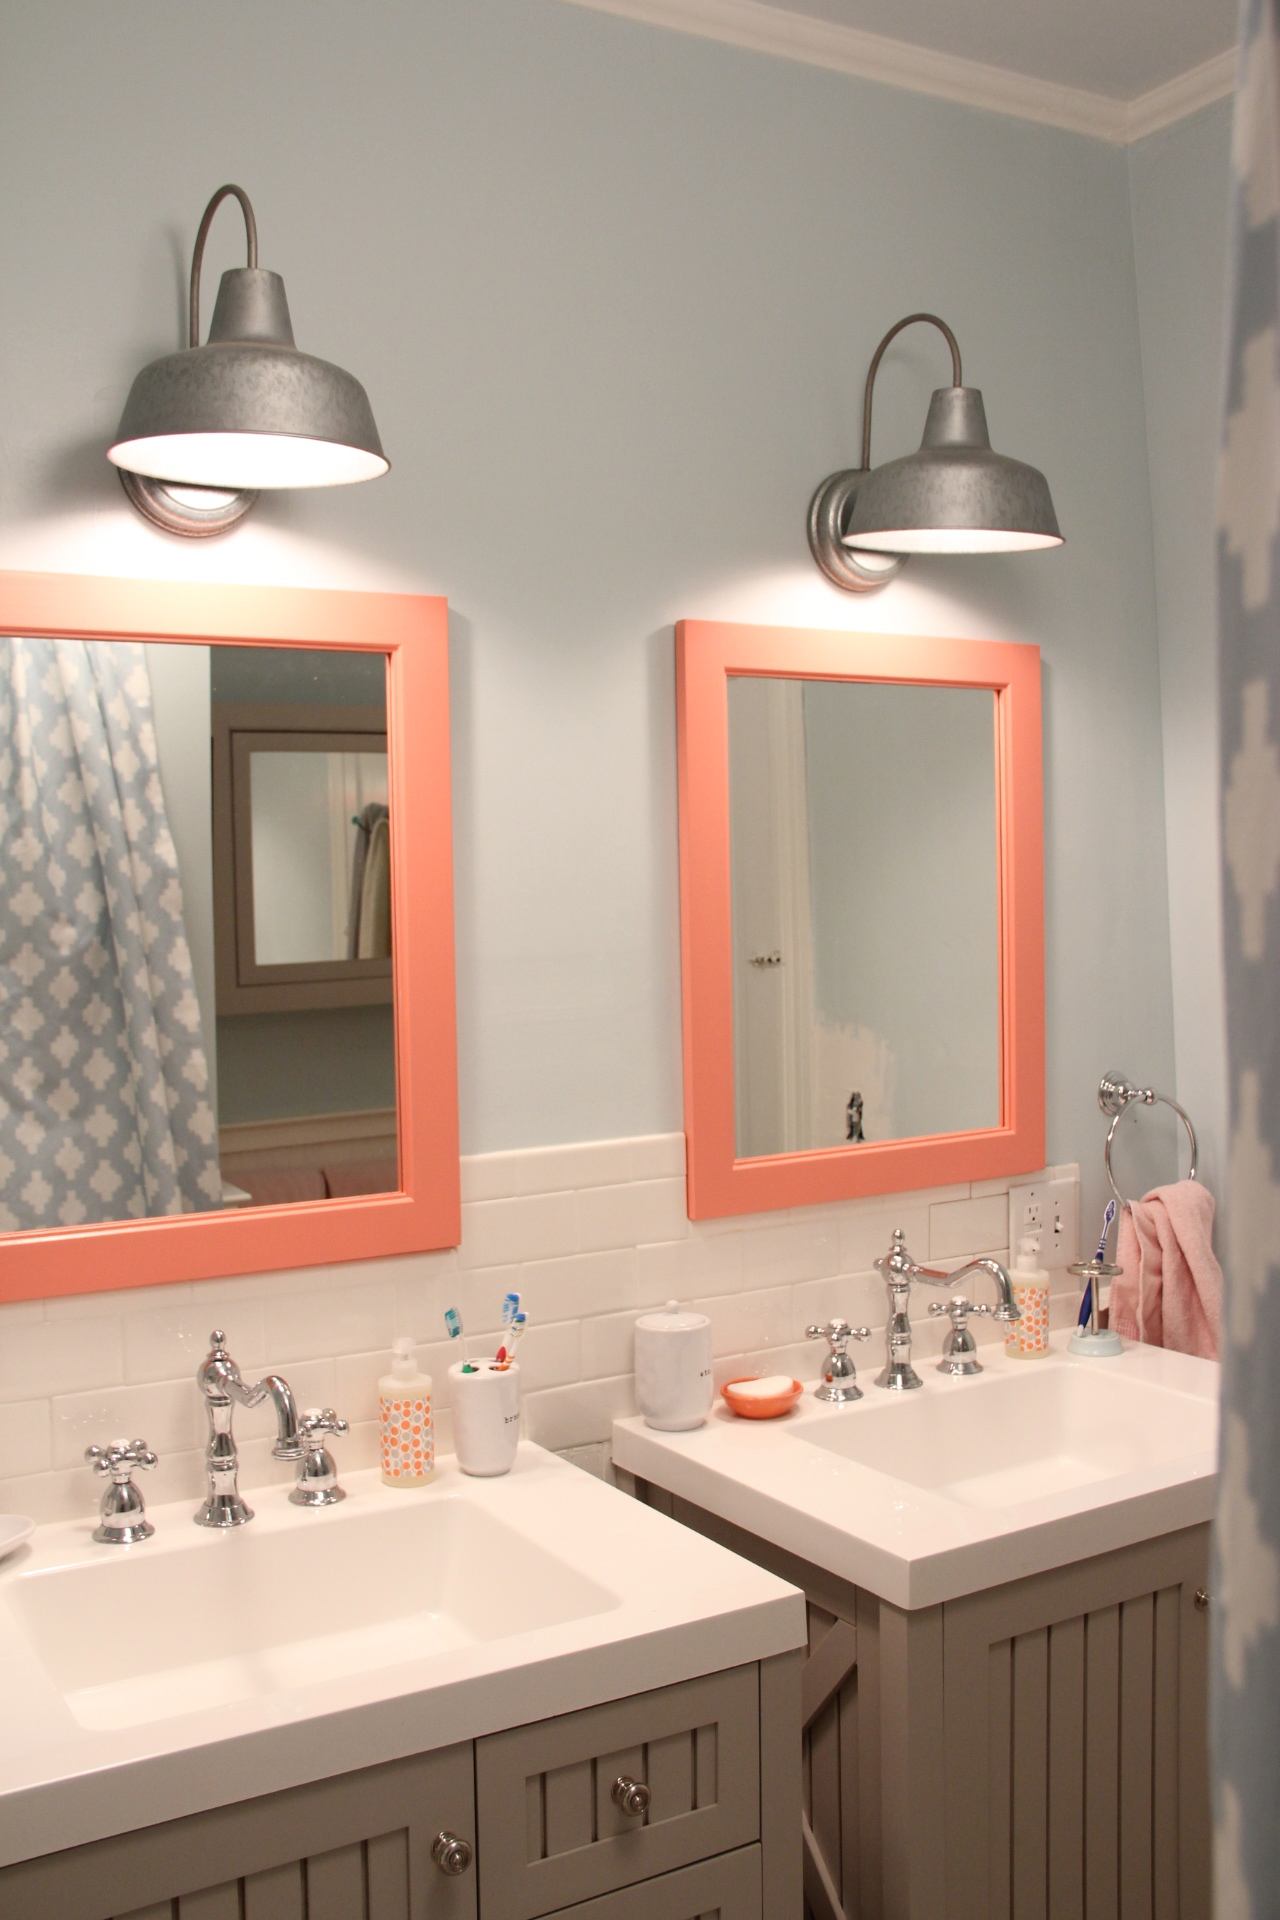 Elegant Galvanized sconces LOWES Mirrors painted Benjamin Moore Coral Gables